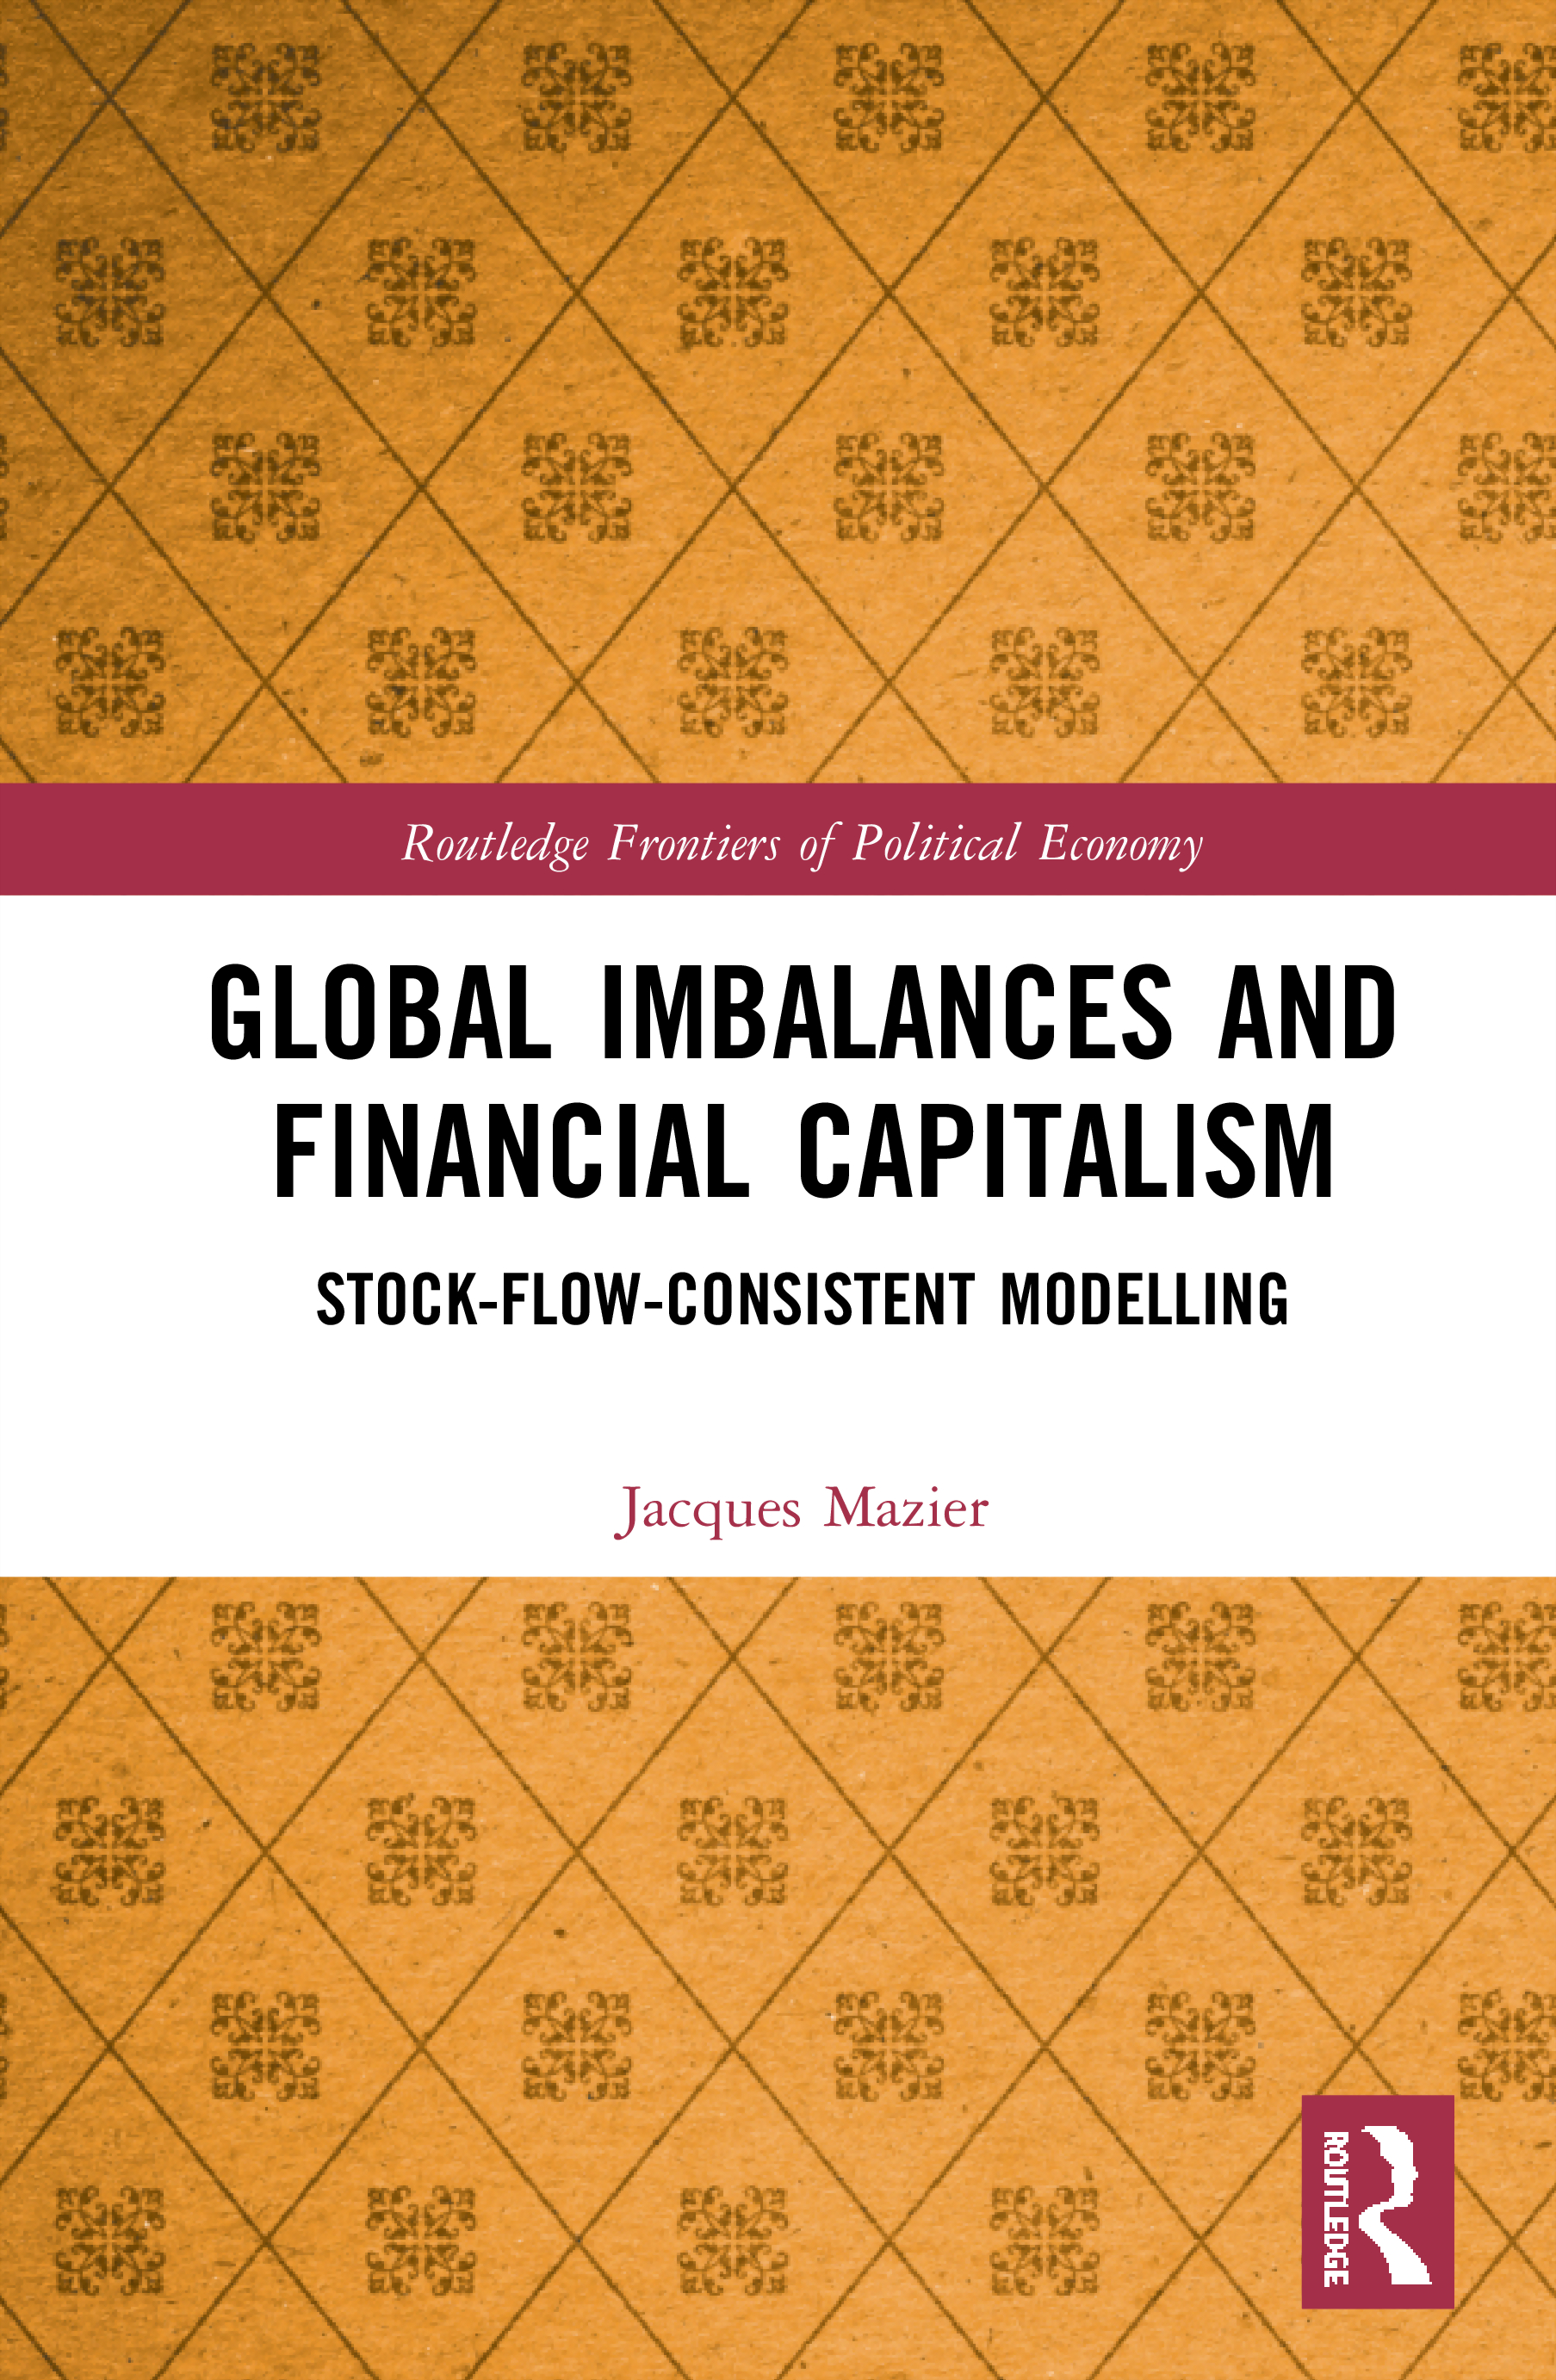 Global Imbalances and Financial Capitalism: Stock-Flow-Consistent Modelling, 1st Edition (Hardback) book cover